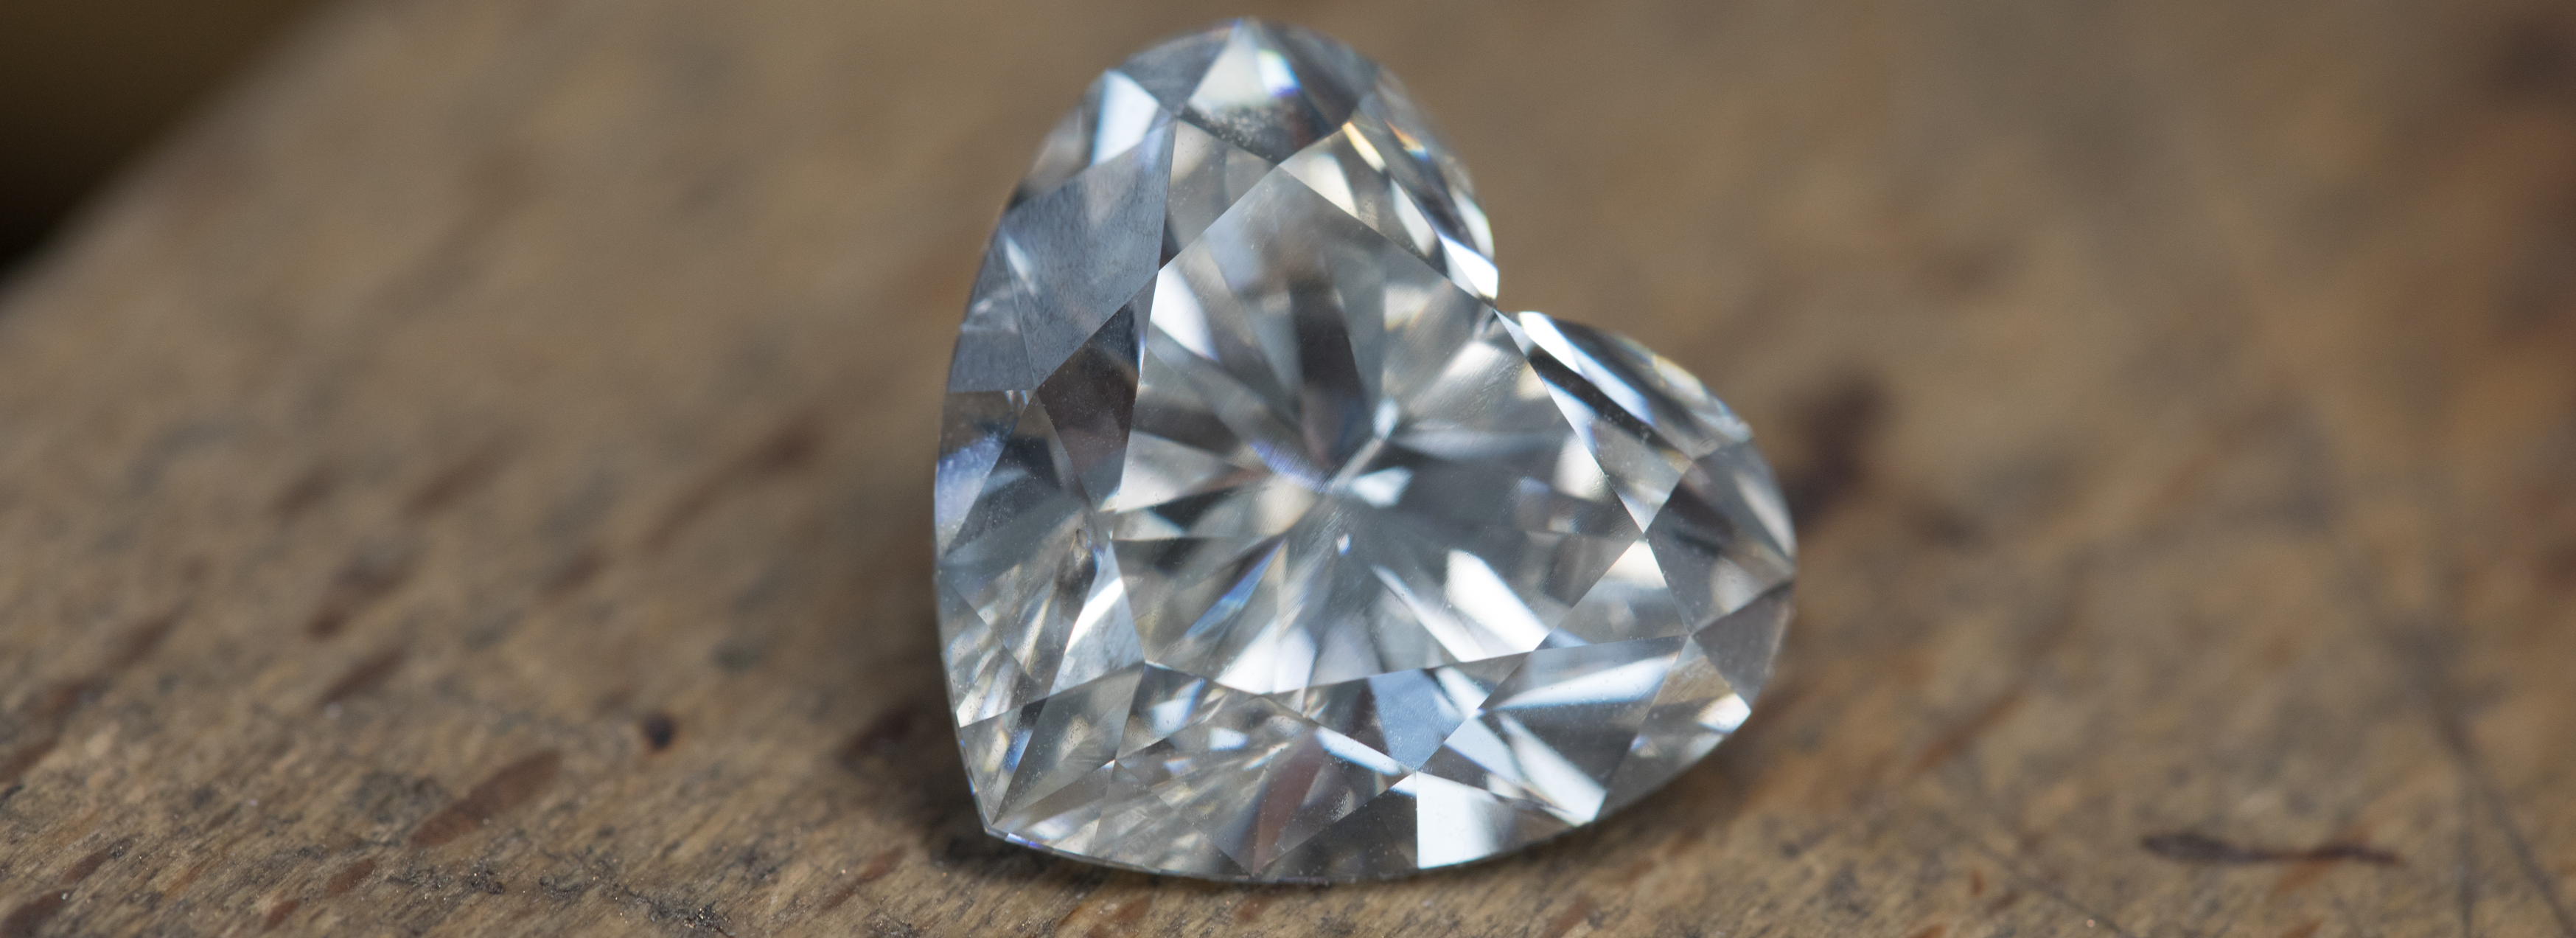 Close-up view of Heart shaped un-set diamond